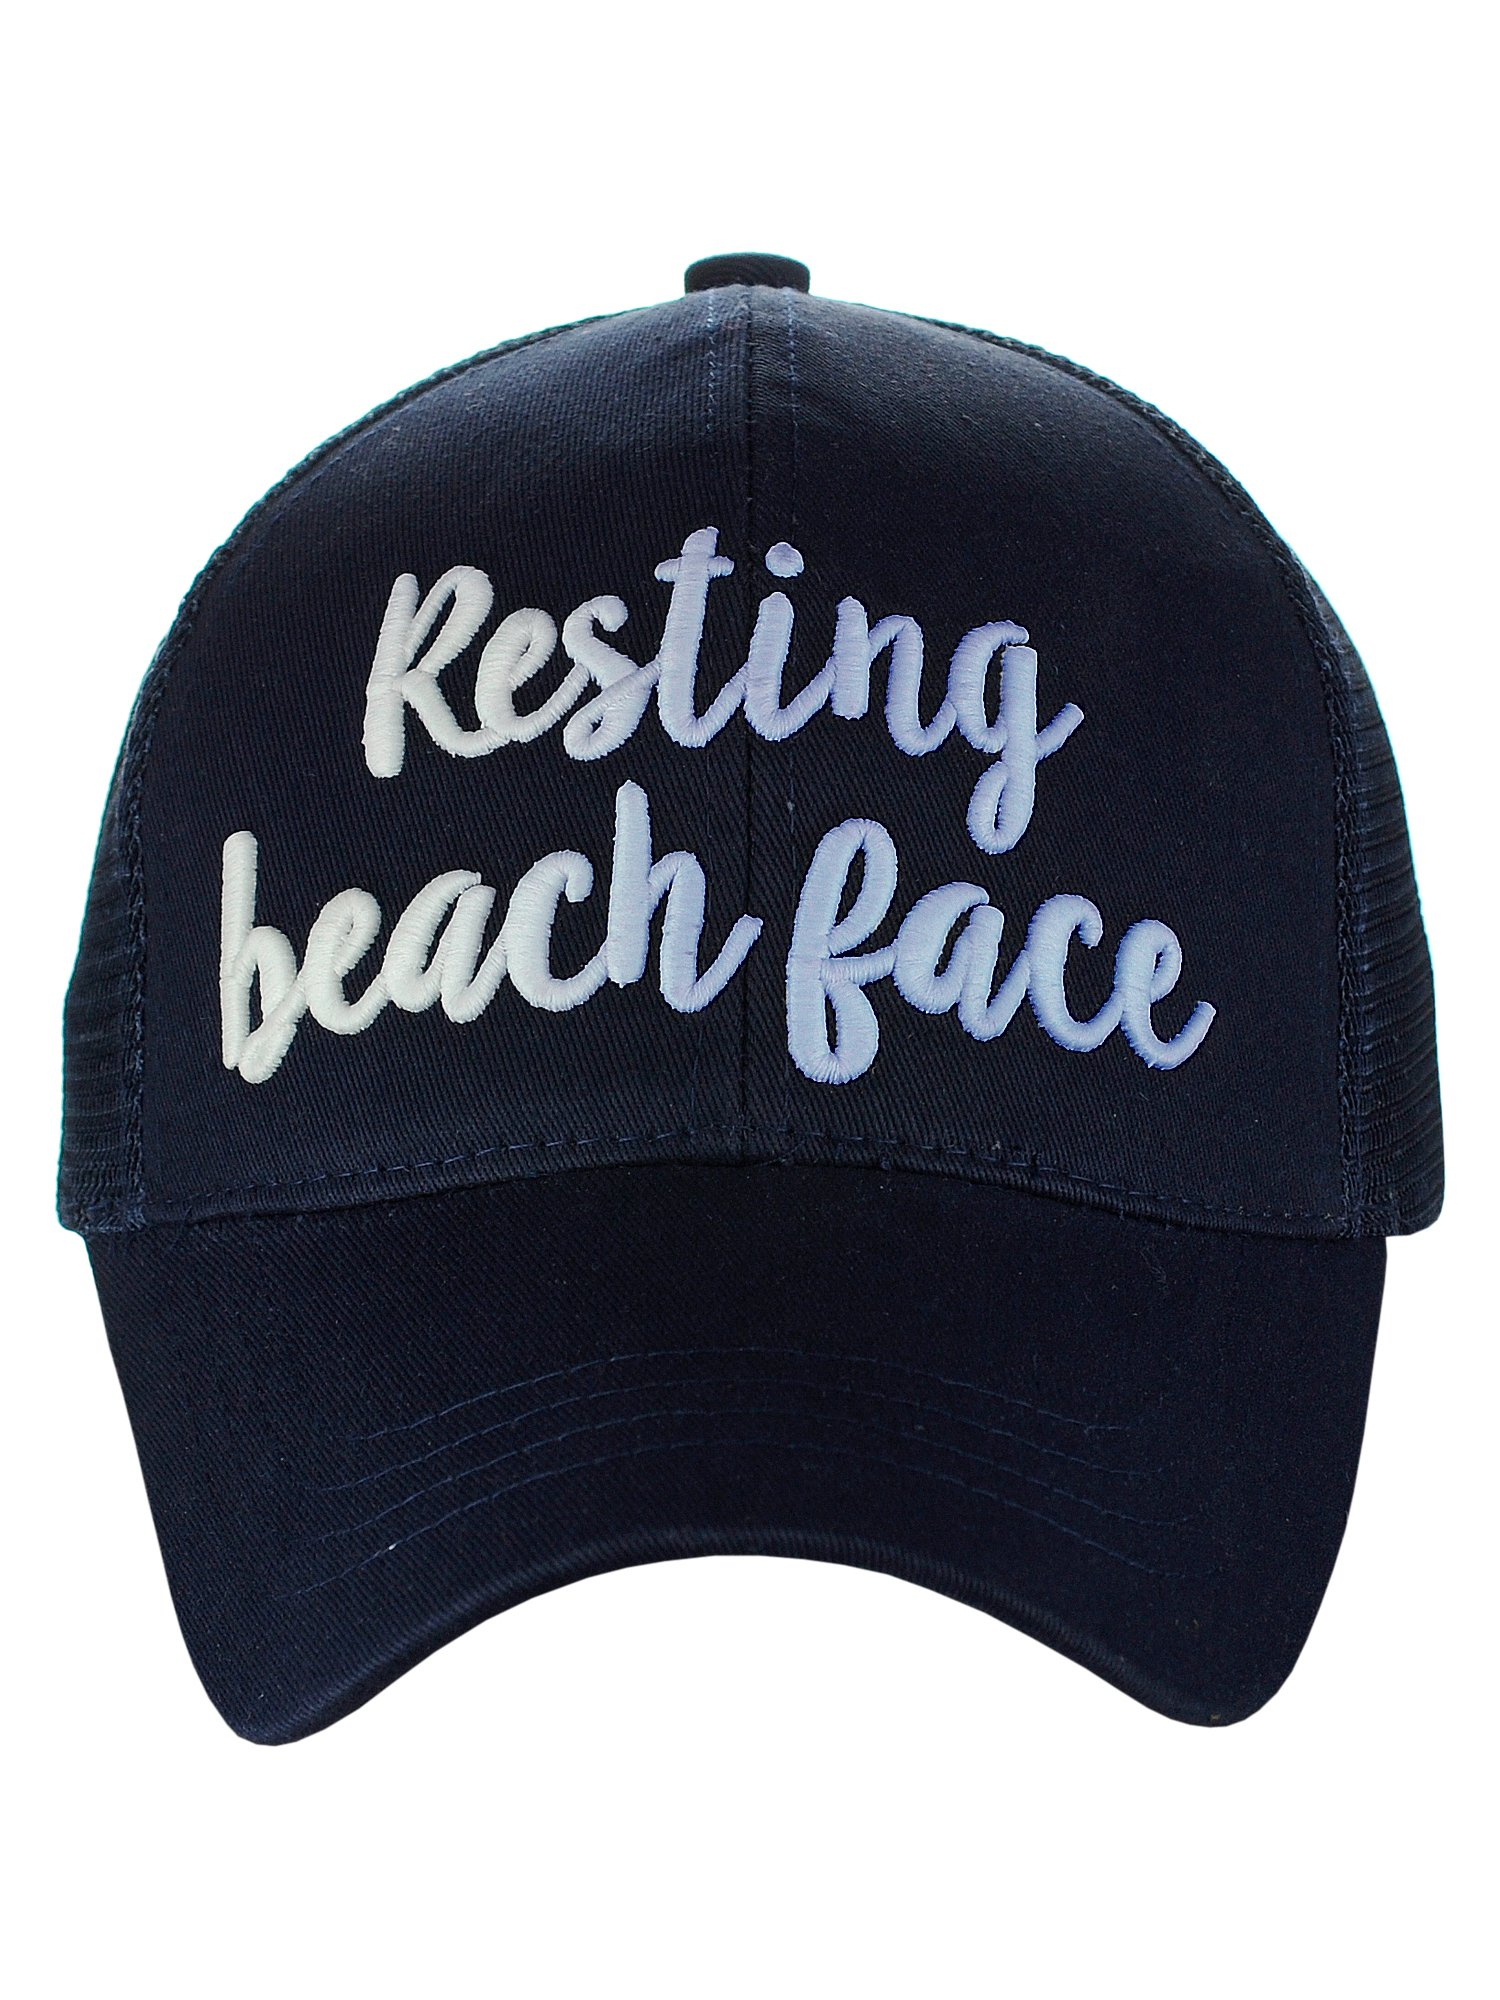 C.C Ponycap Color Changing 3D Embroidered Quote Adjustable Trucker Baseball Cap, Resting Beach Face, Navy